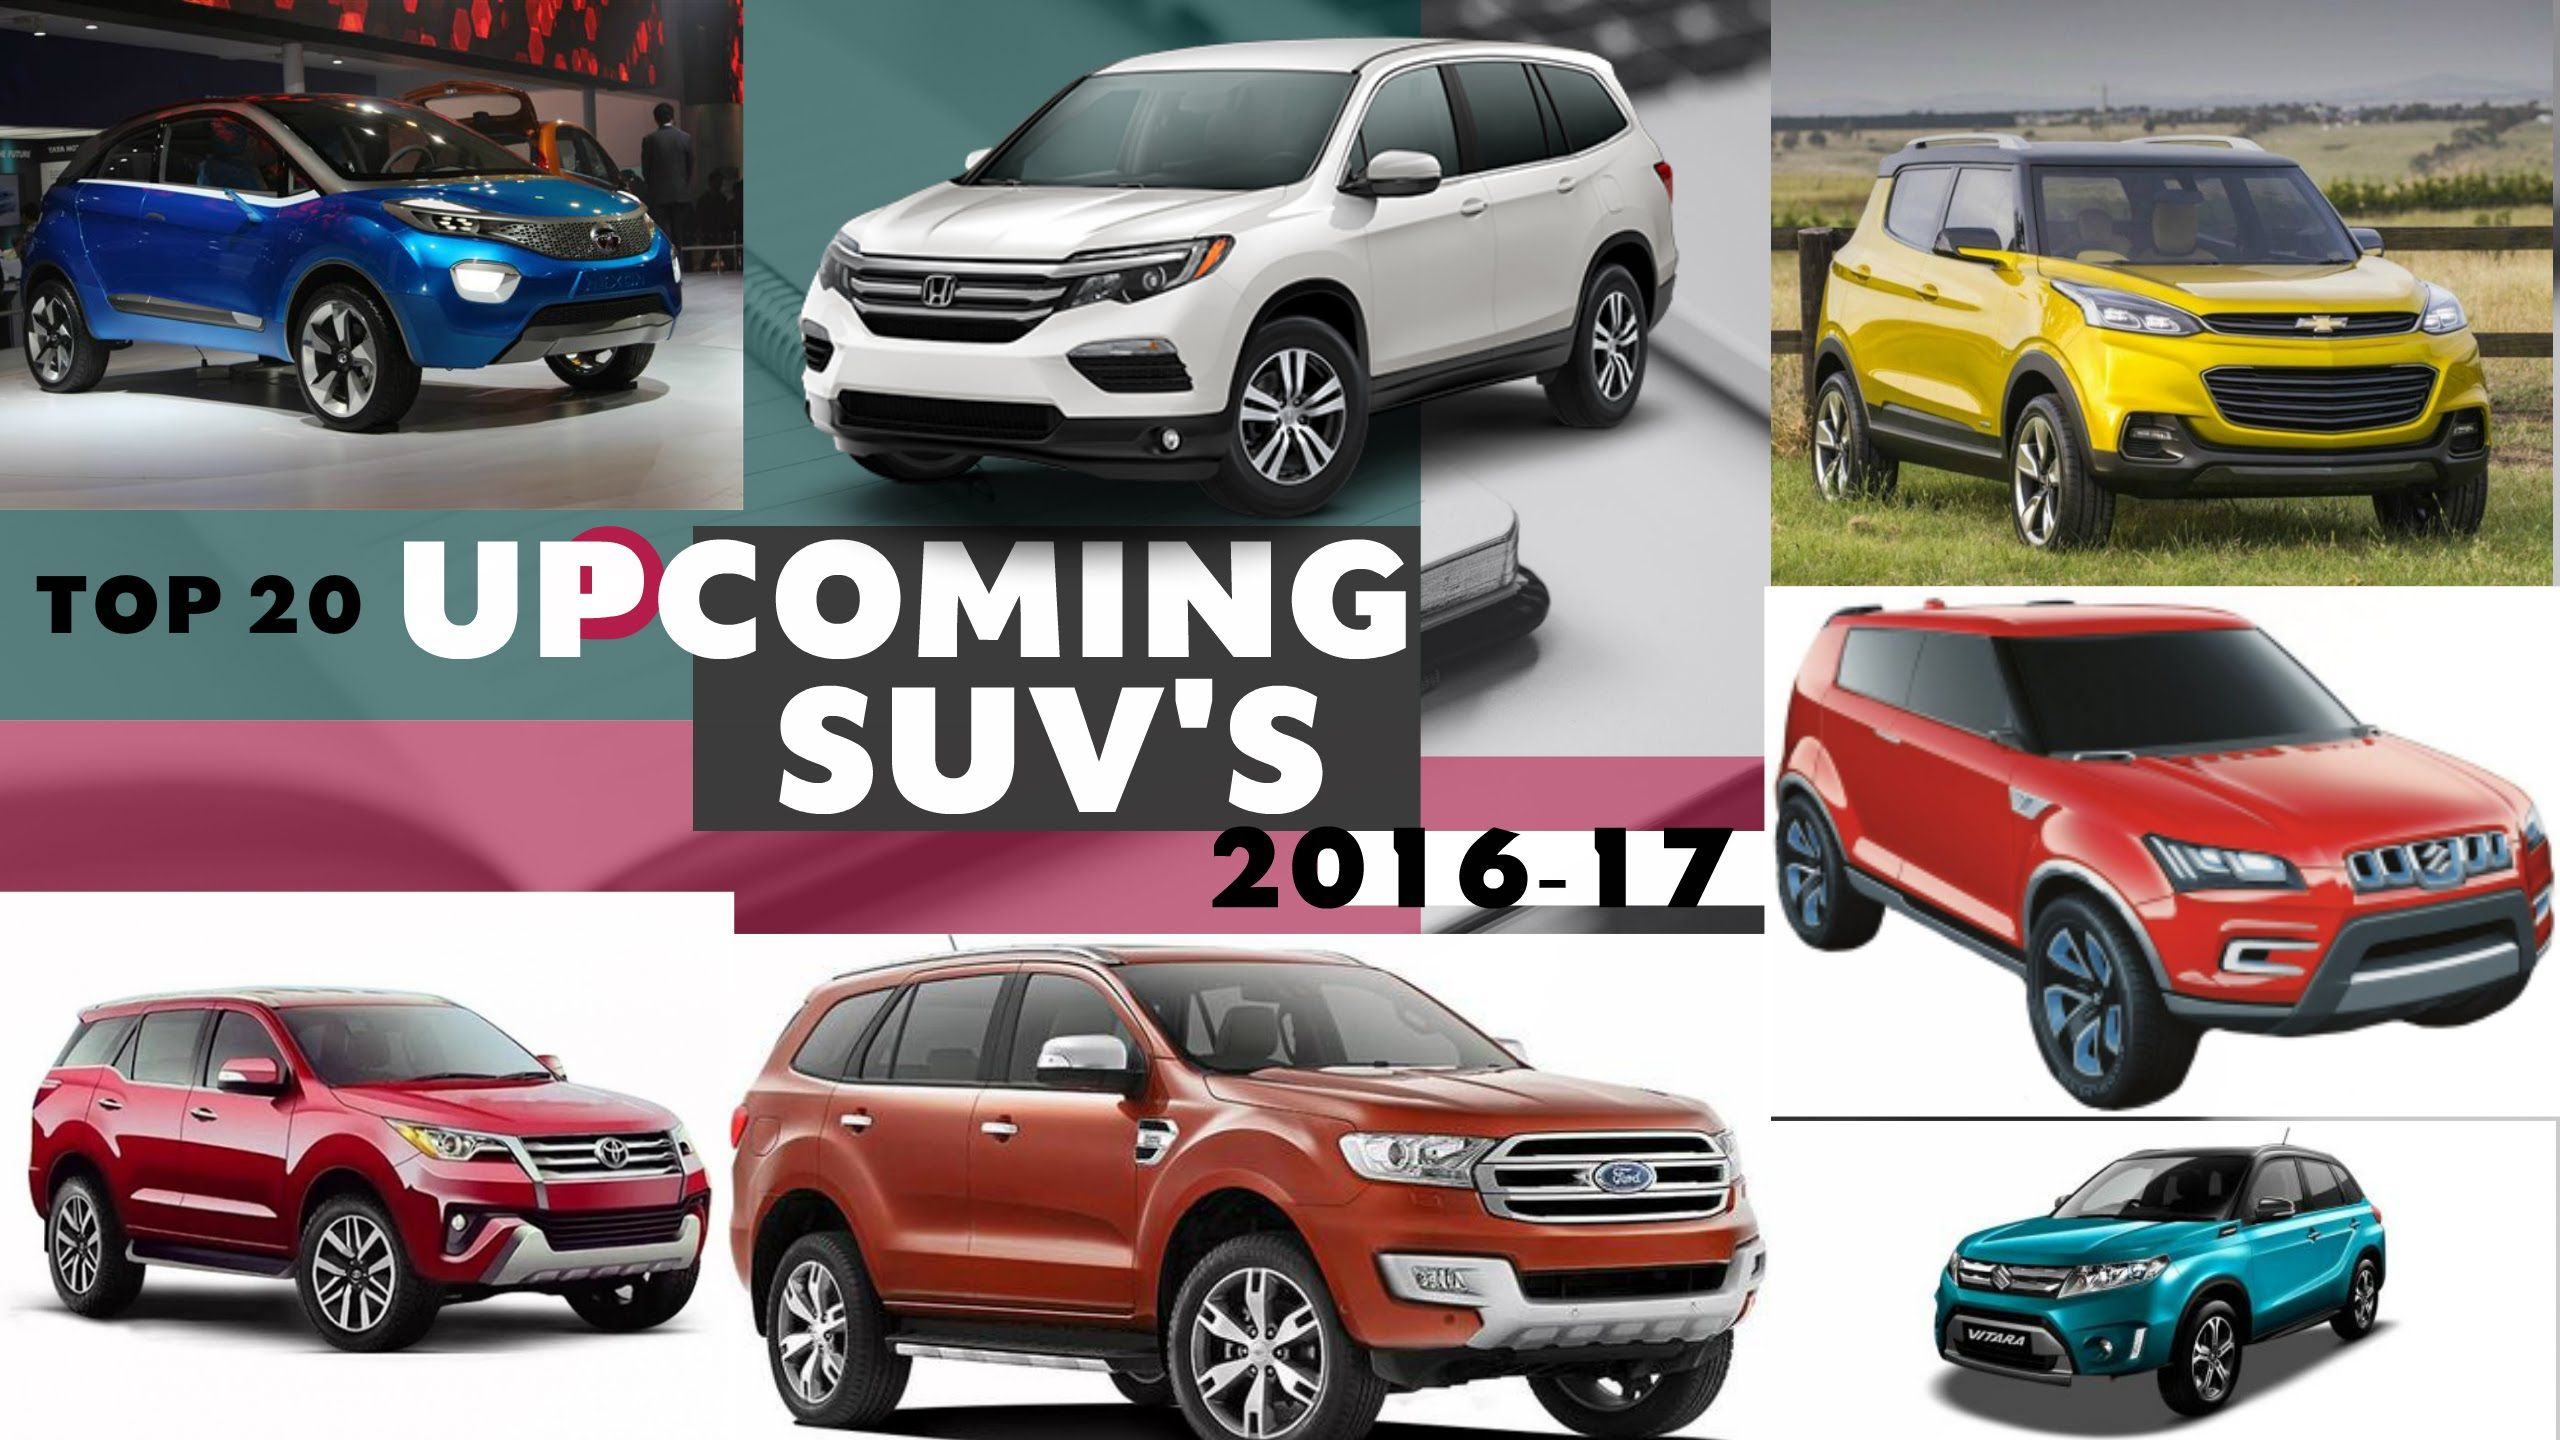 Top 20 Upcoming Suv Cars In 2016 17 India The Roads Will Never